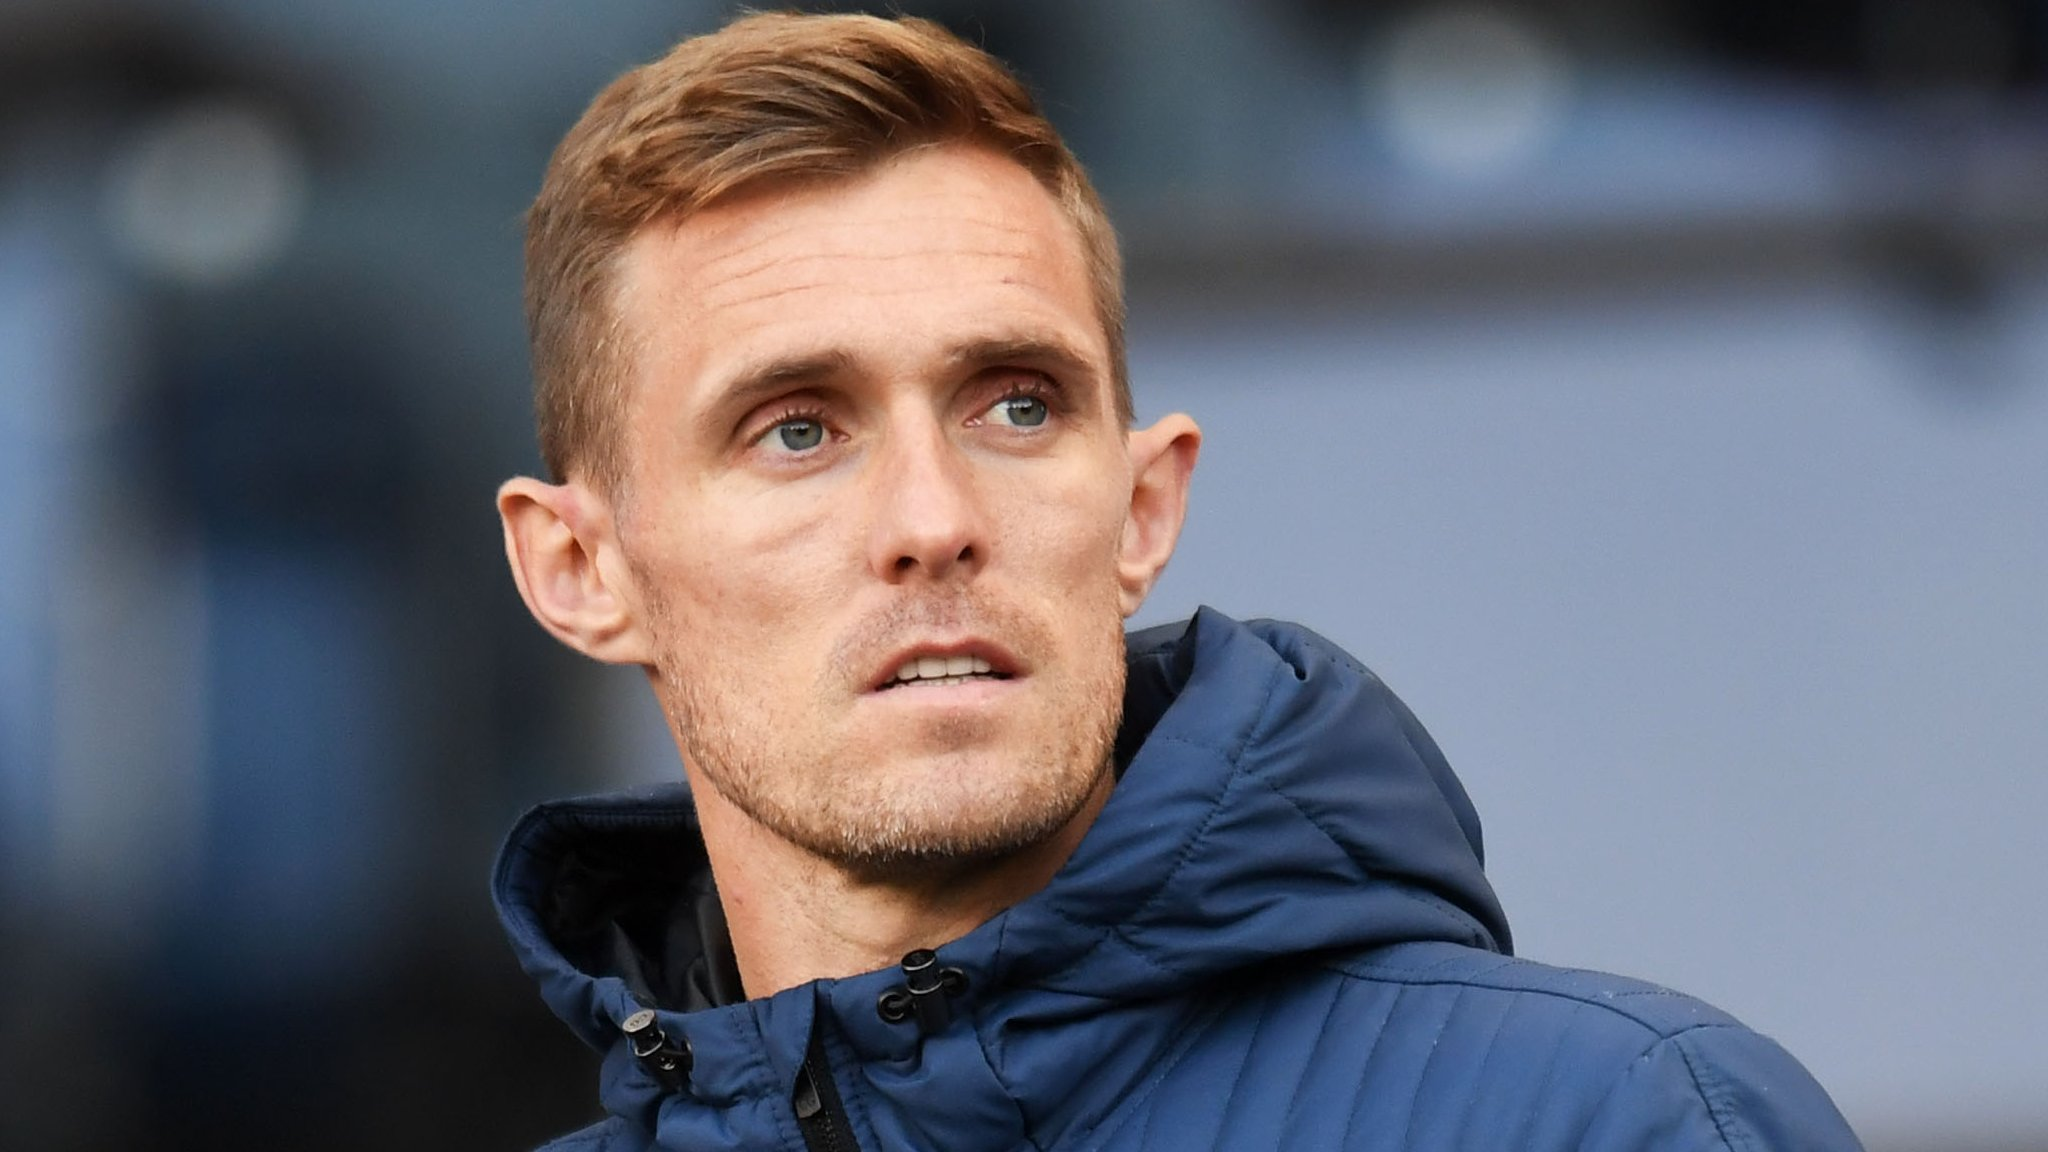 Players restrain themselves over abuse, says Darren Fletcher